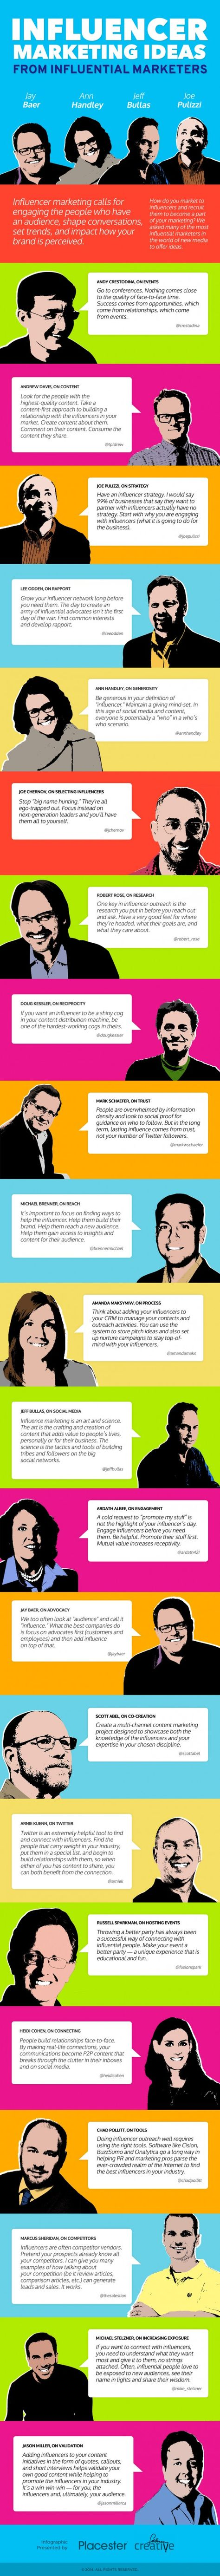 Influencer Marketing Ideas from Influential Marketers [Infographic]